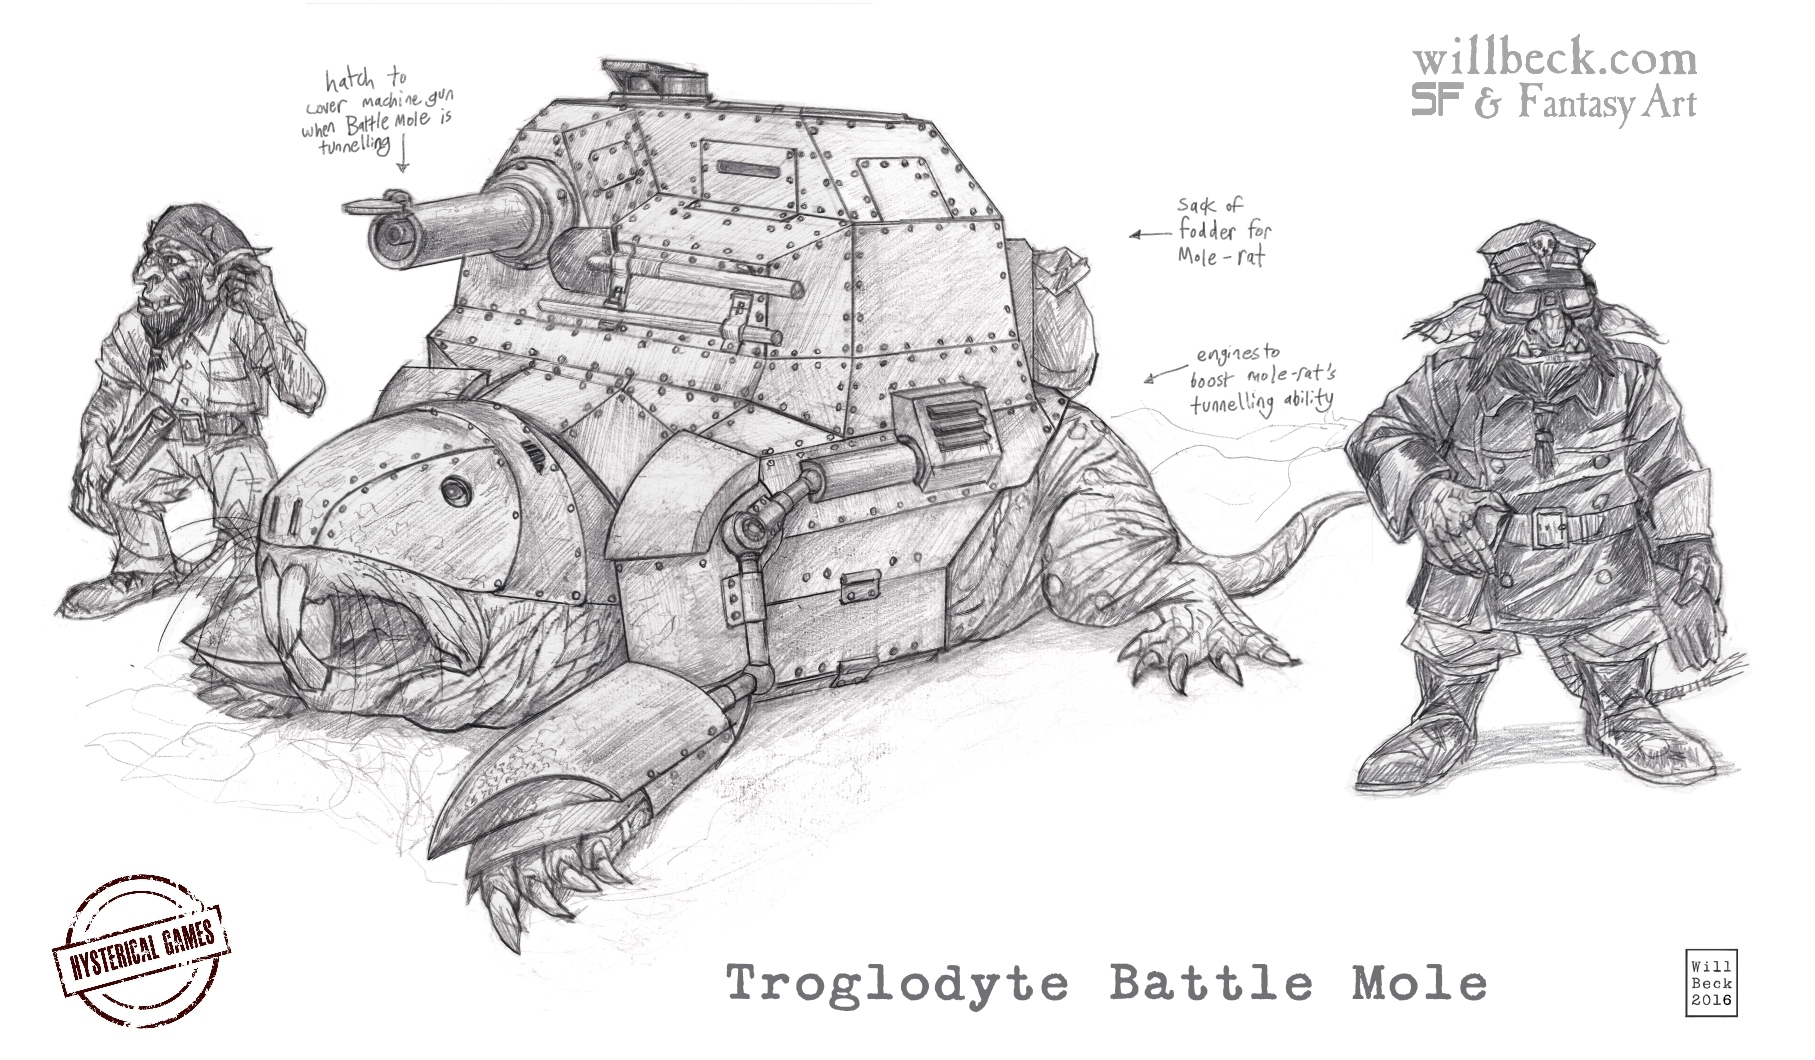 Troglodyte Battle Mole